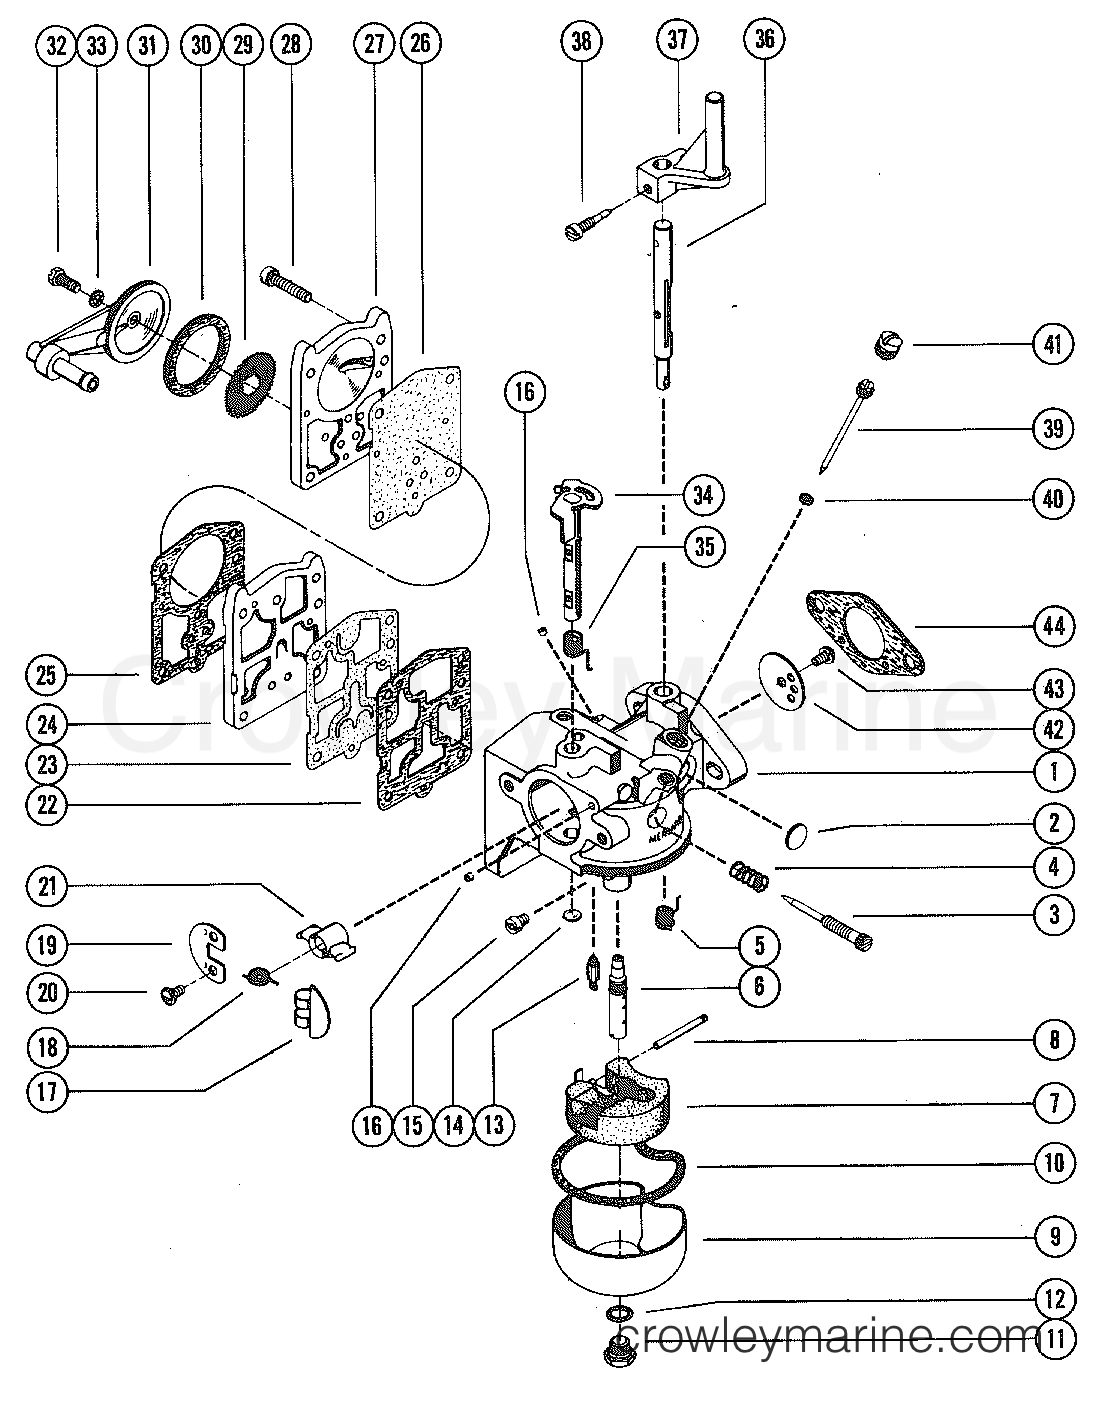 mercury outboard parts diagrams mercury image mercury 110 lower unit diagram diagram on mercury outboard parts diagrams